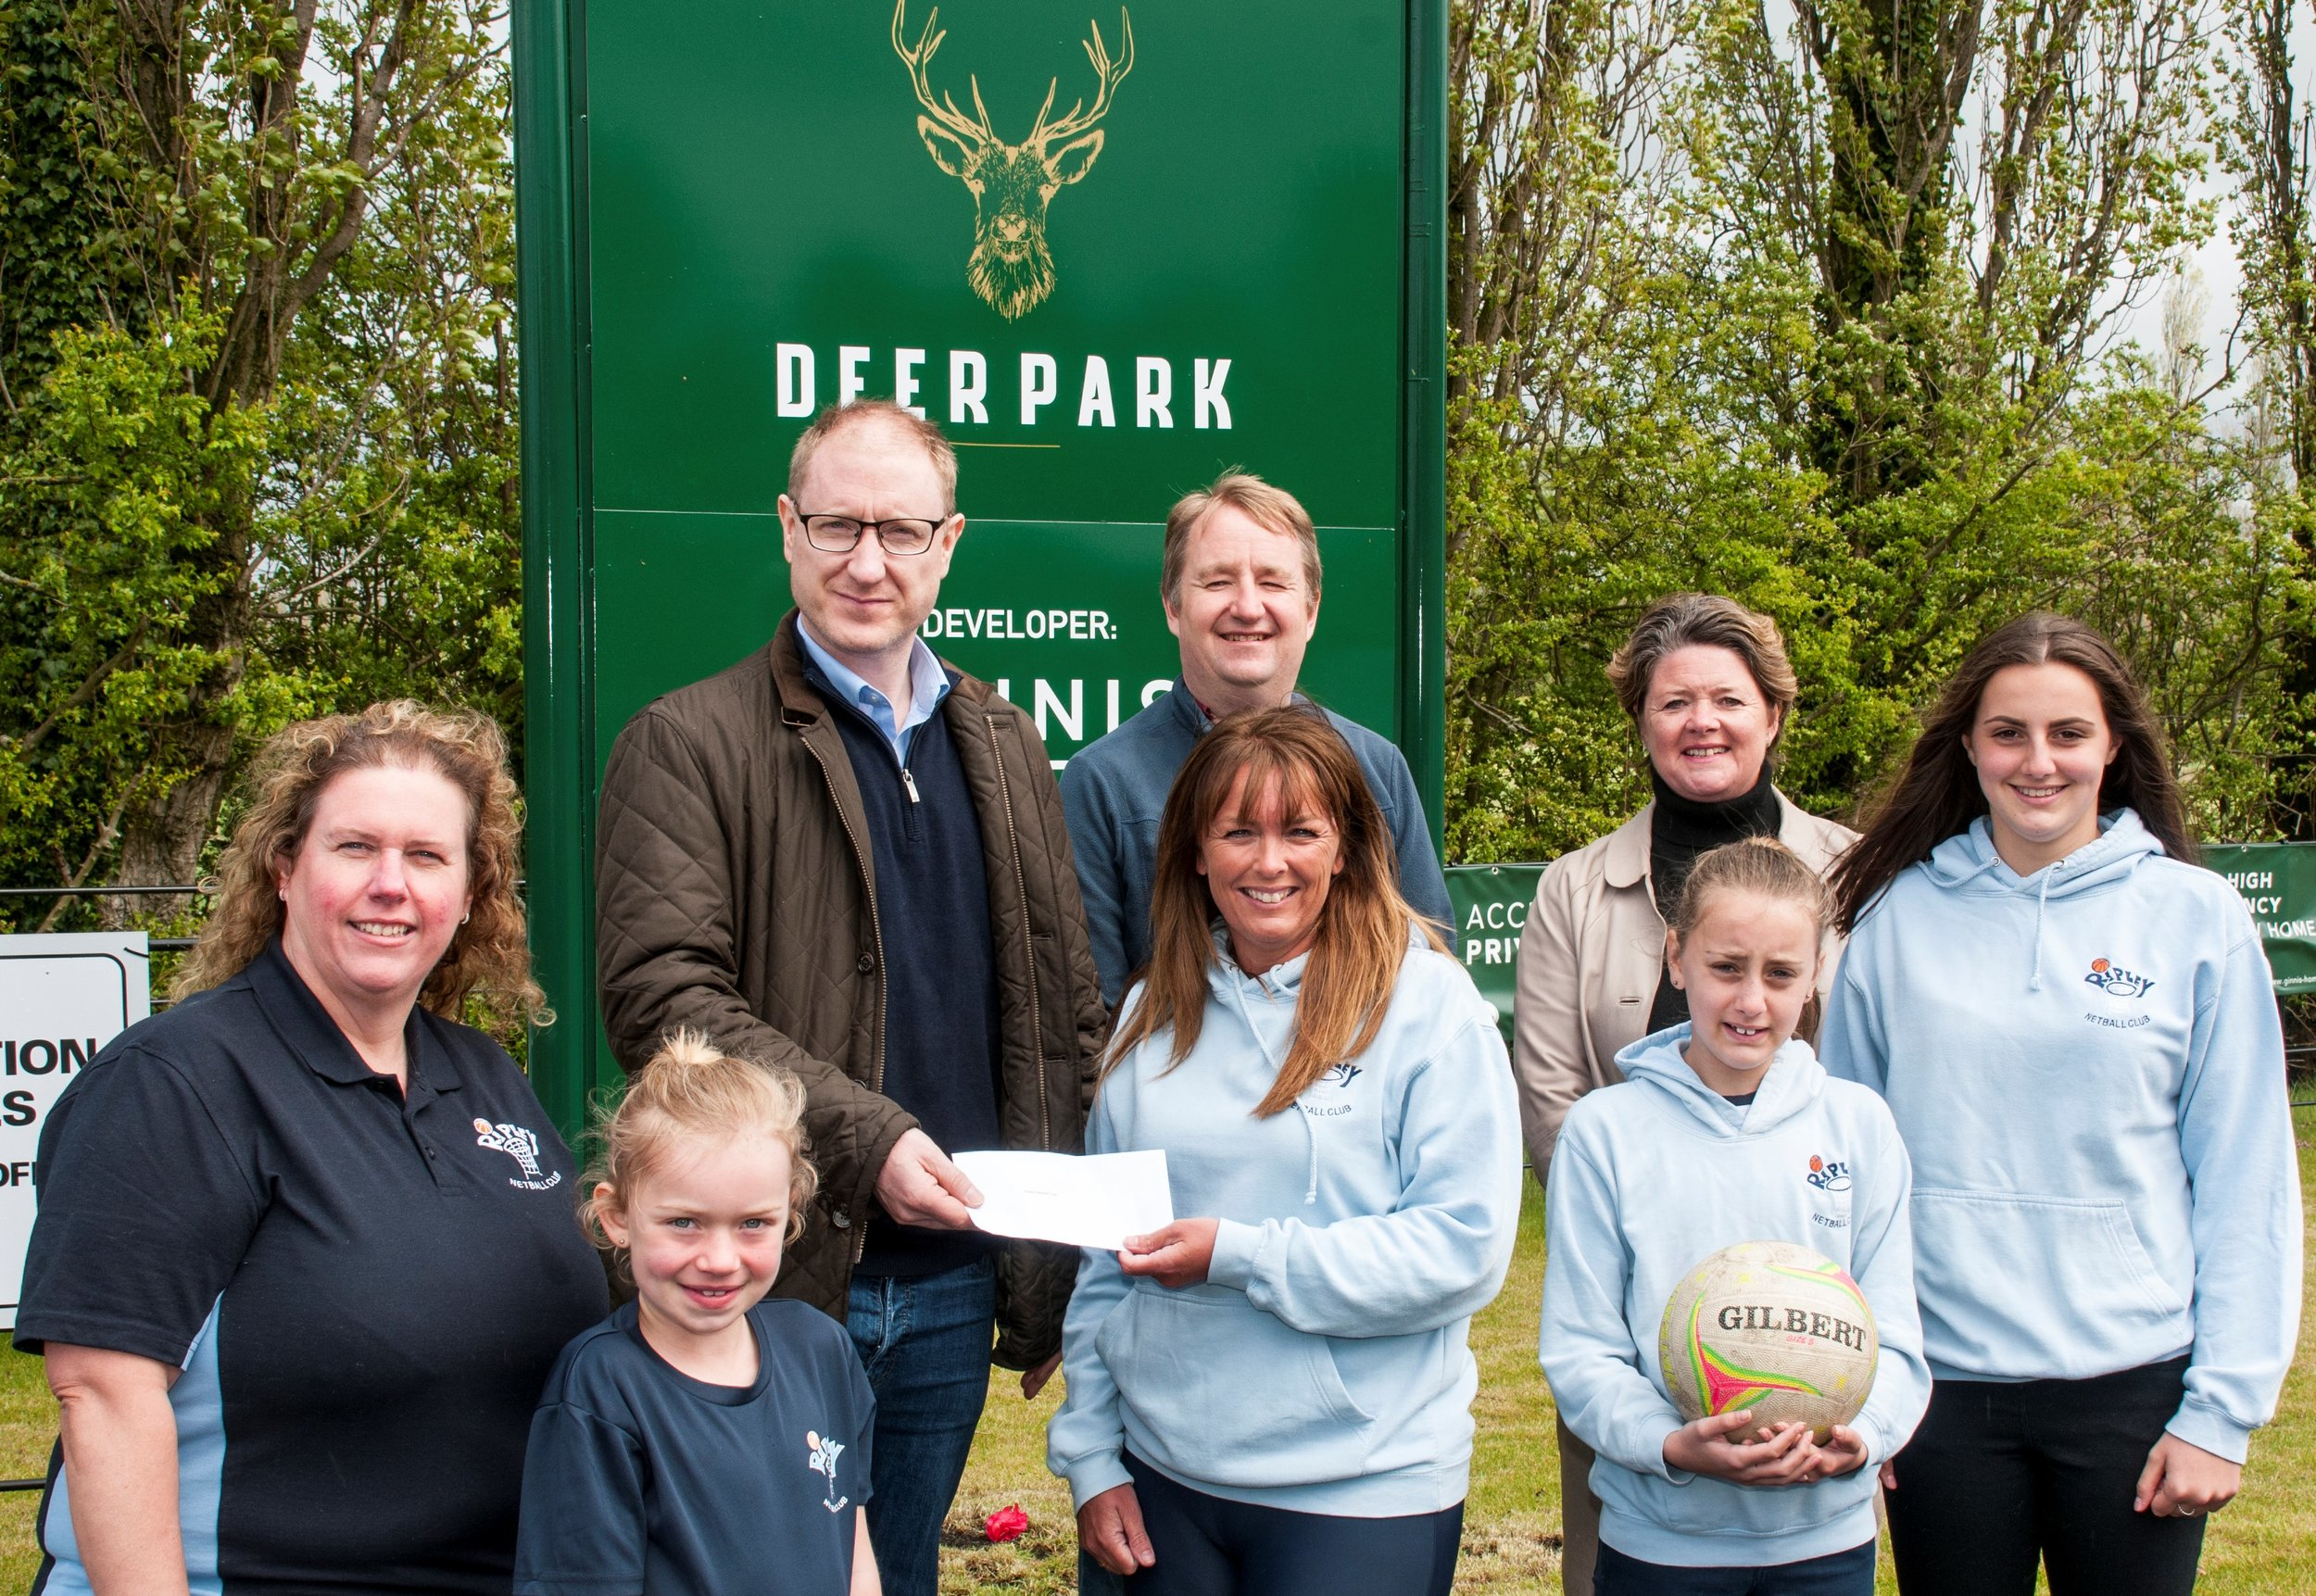 Pictured accepting the sponsorship from Deer Park developer Ginnis New Homes are: (front row L-r): Janie Wheatley, Grace Ganly, Cheryl Naylor, Charley Delrosso and Libby Delrosso from Ripley Netball Club. Back row, pictured (L-r) Pat McGinnis, Ginnis New Homes, Nigel Mills, MP and Jo Hutchinson, former Ripley Netball Club member and representing estate agent Boxall, Brown & Jones. Penguin PR: public relations, media and communications